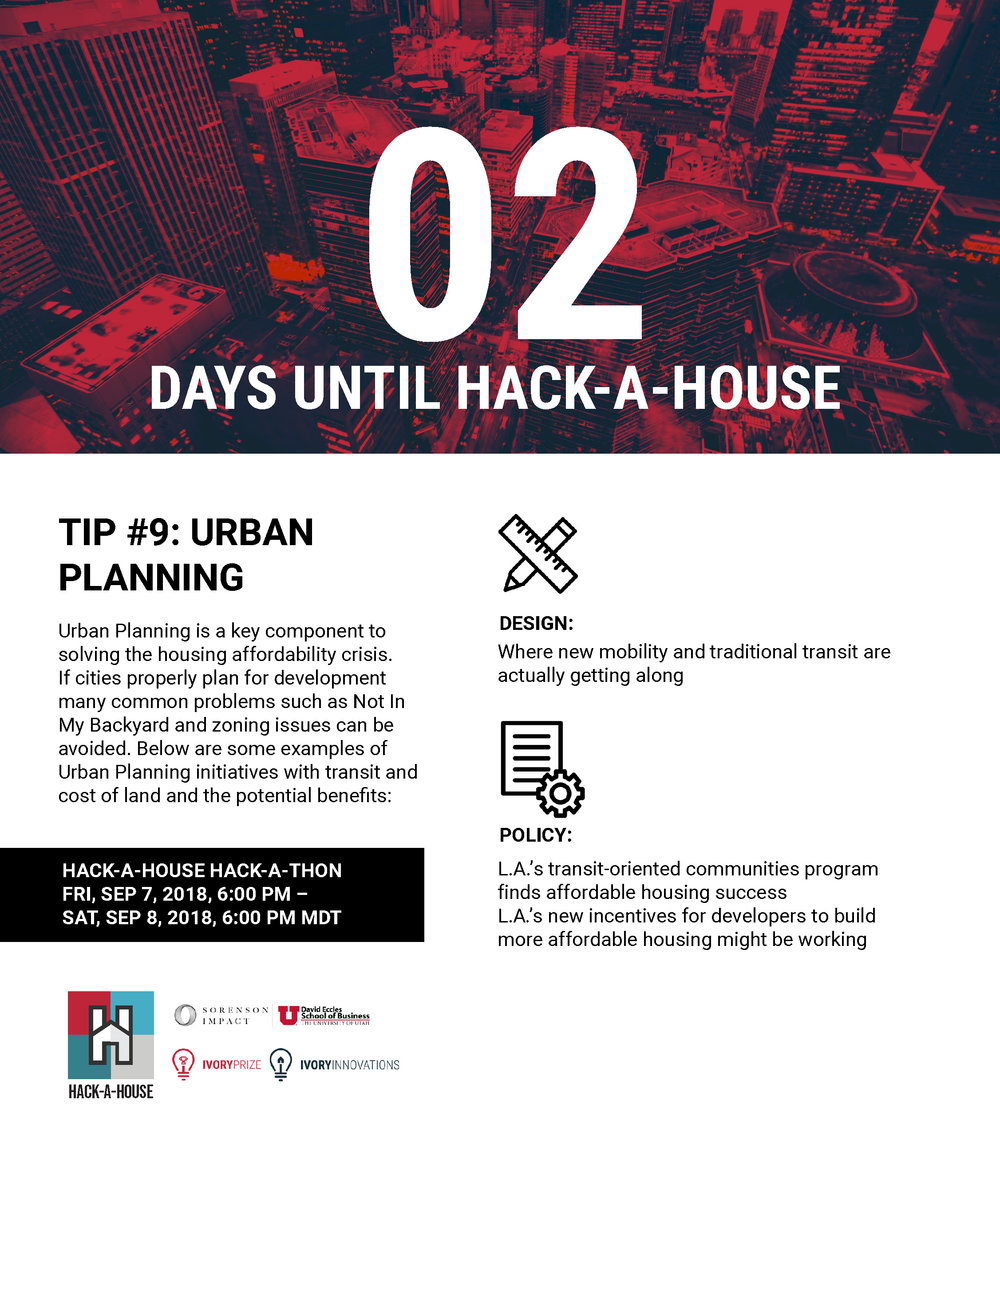 hack-a-house countdown_09.jpg